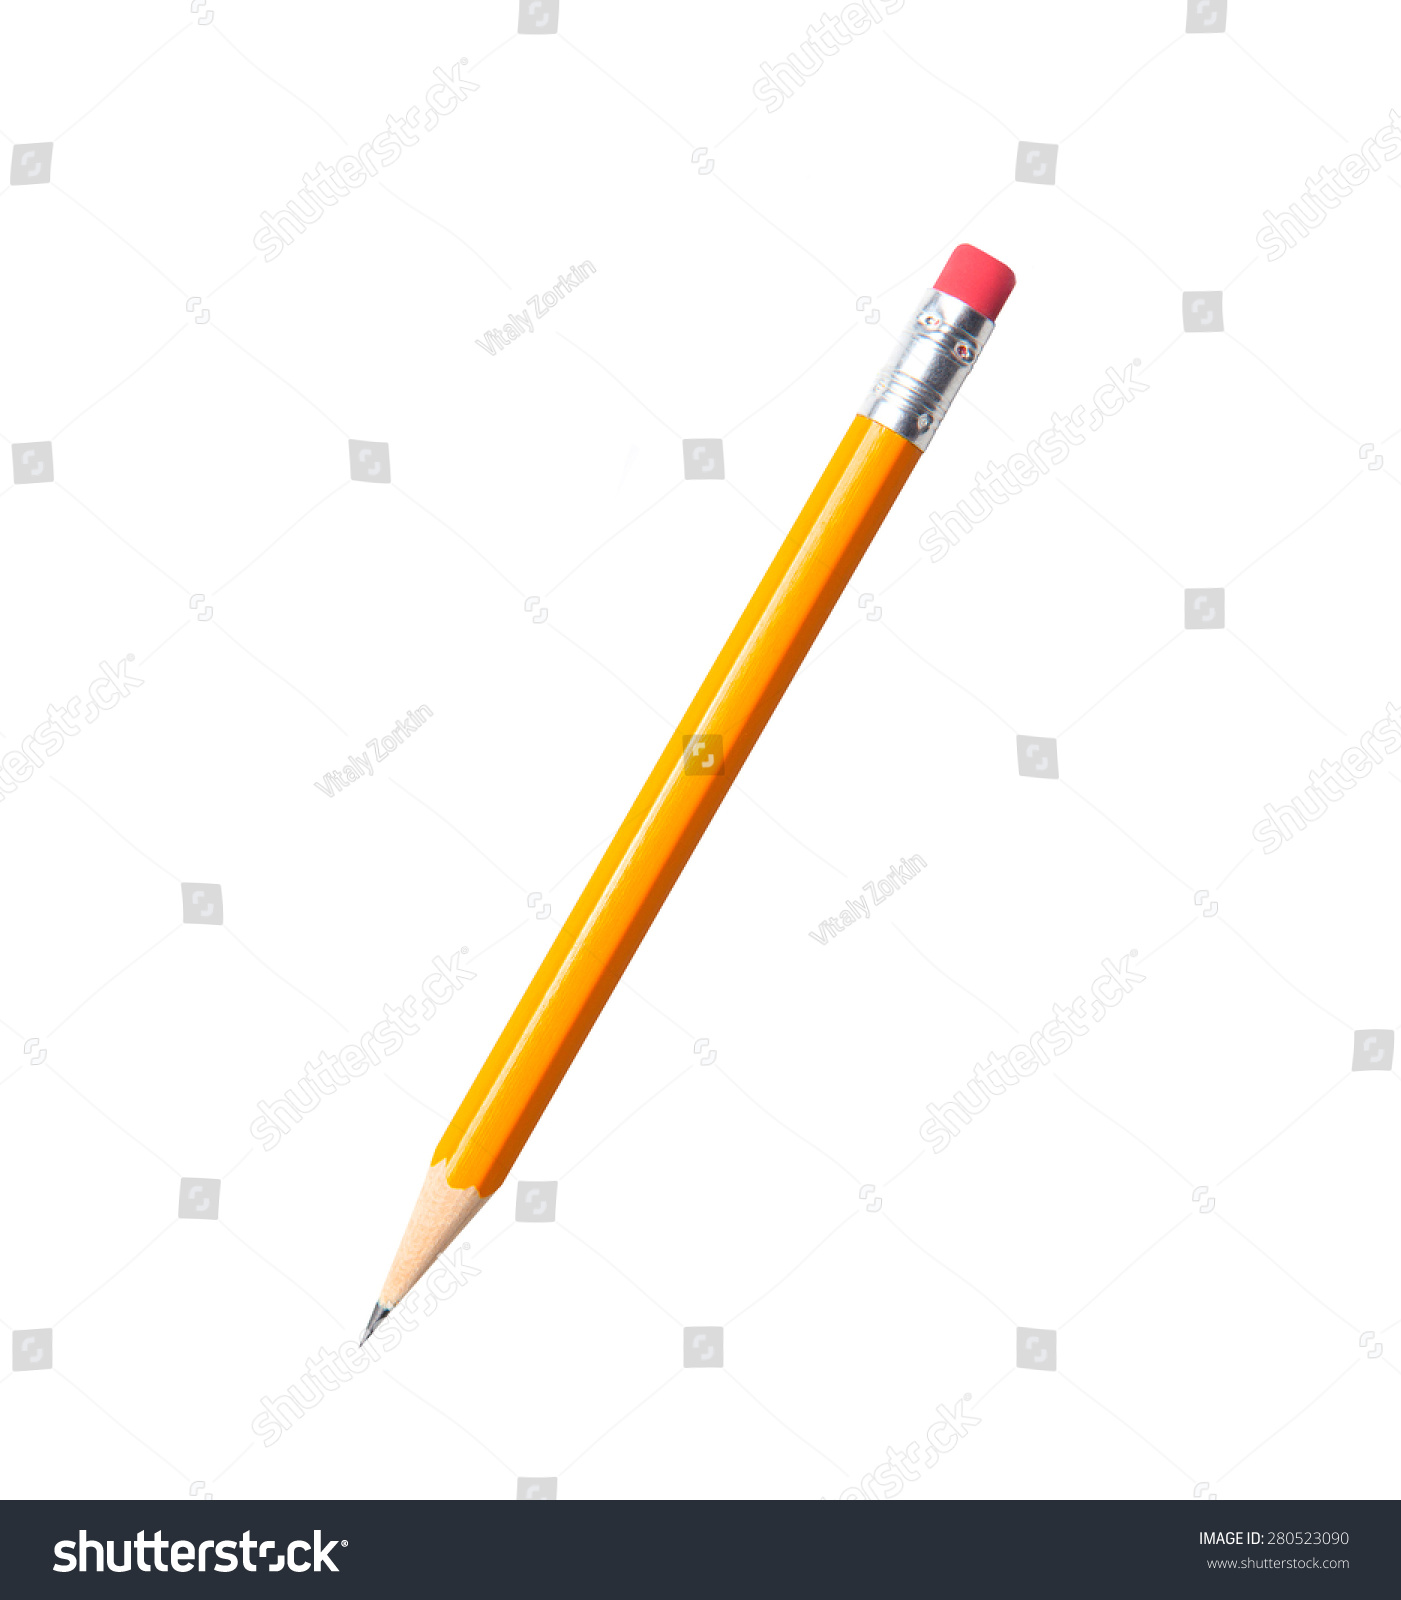 Amazing isolated tilted yellow pencil on pure white background. #280523090